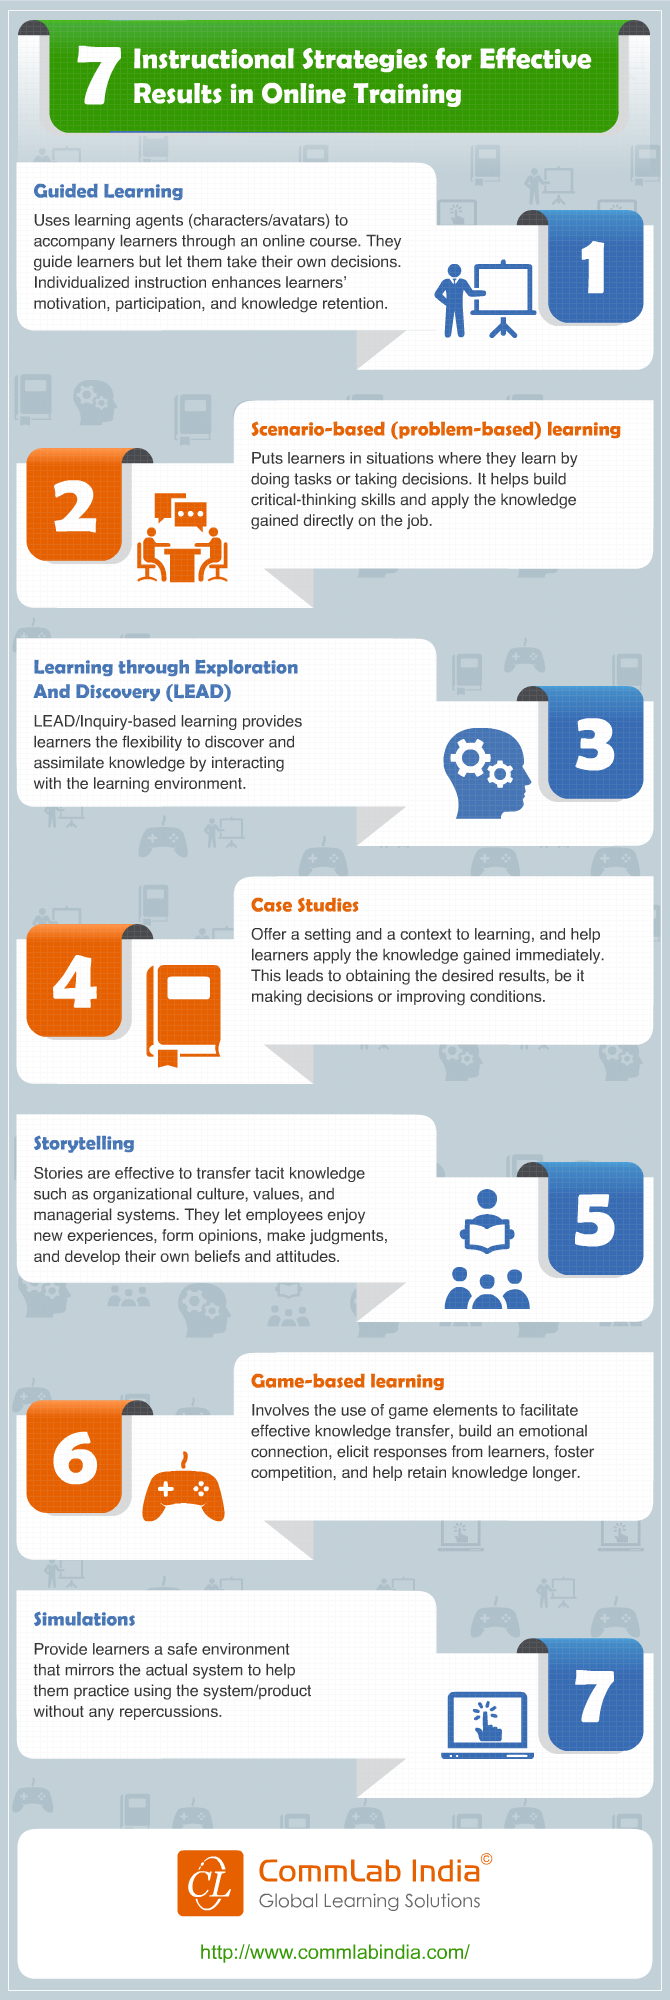 7 Instructional Strategies for Effective Results in Online Training [Infographic]